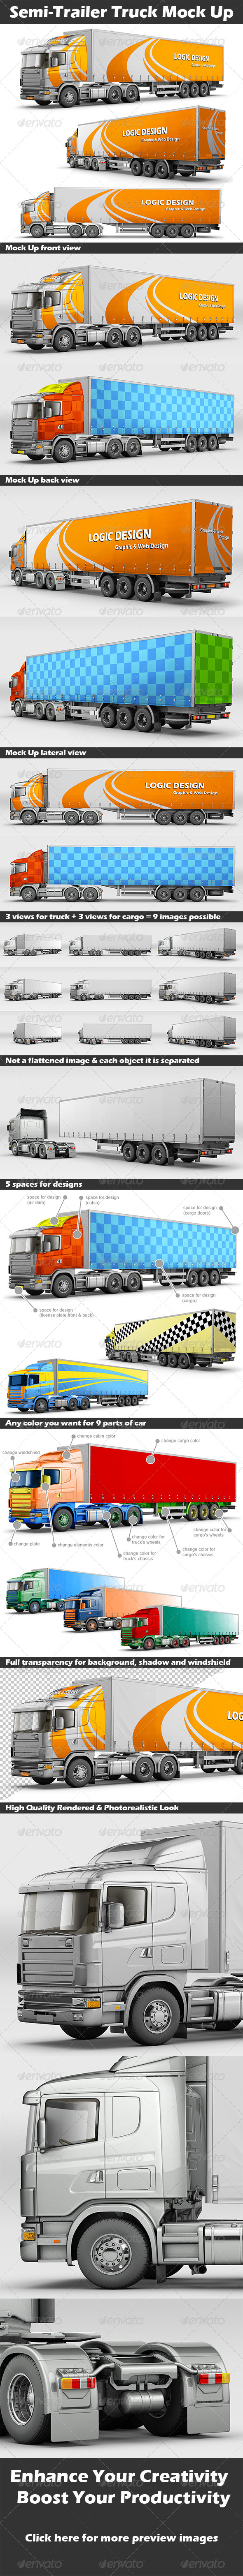 Semi-Trailer Truck Mock Up - Product Mock-Ups Graphics